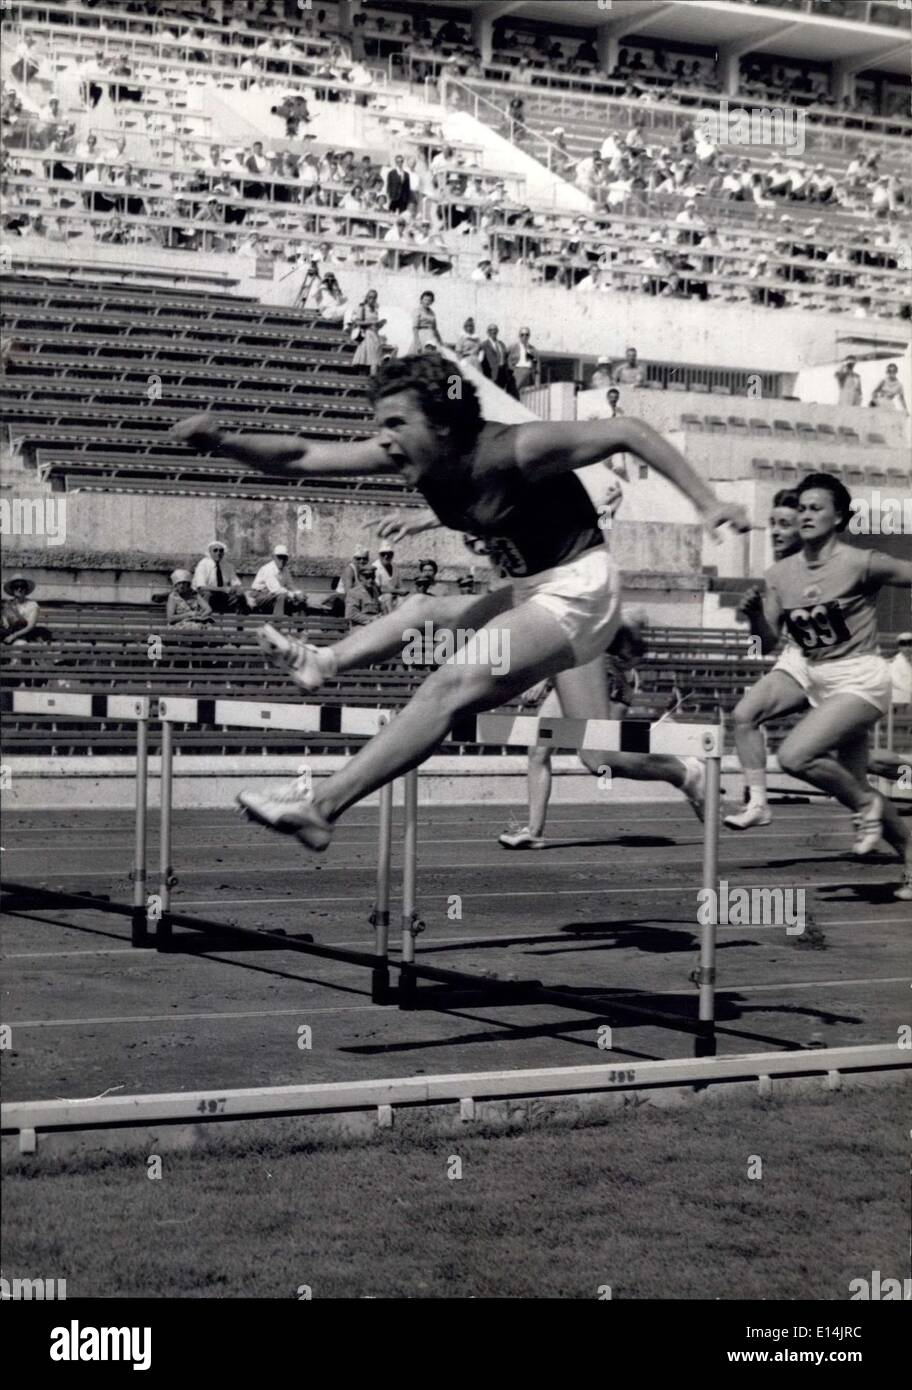 Apr. 05, 2012 - Olympic Games: Athletics First Day. OPS: Irina Press Russia sets up a new Olympic record in 80 m hurdles 10'' - Stock Image